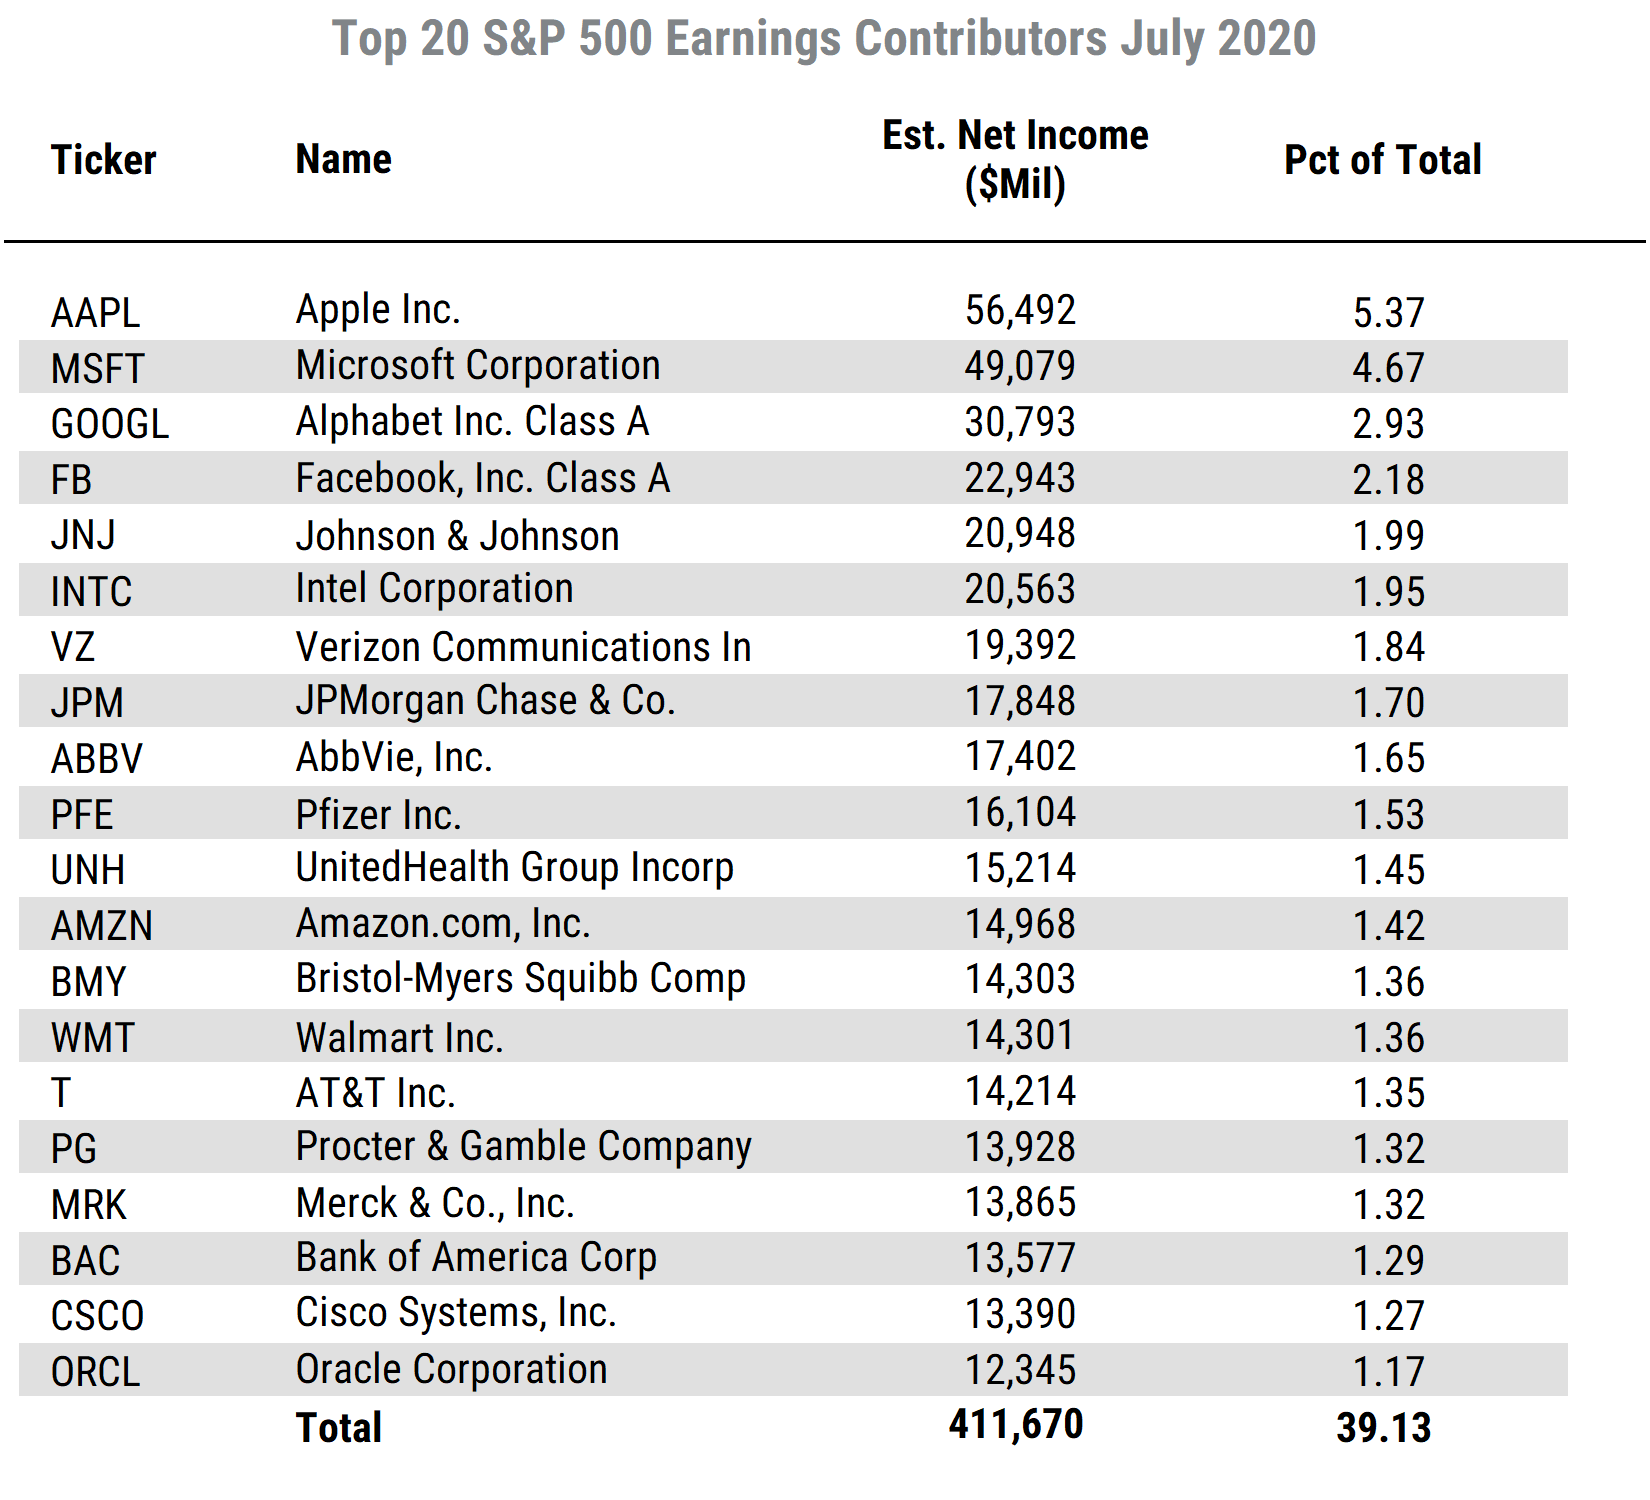 List of Top 20 SP500 Net Inc